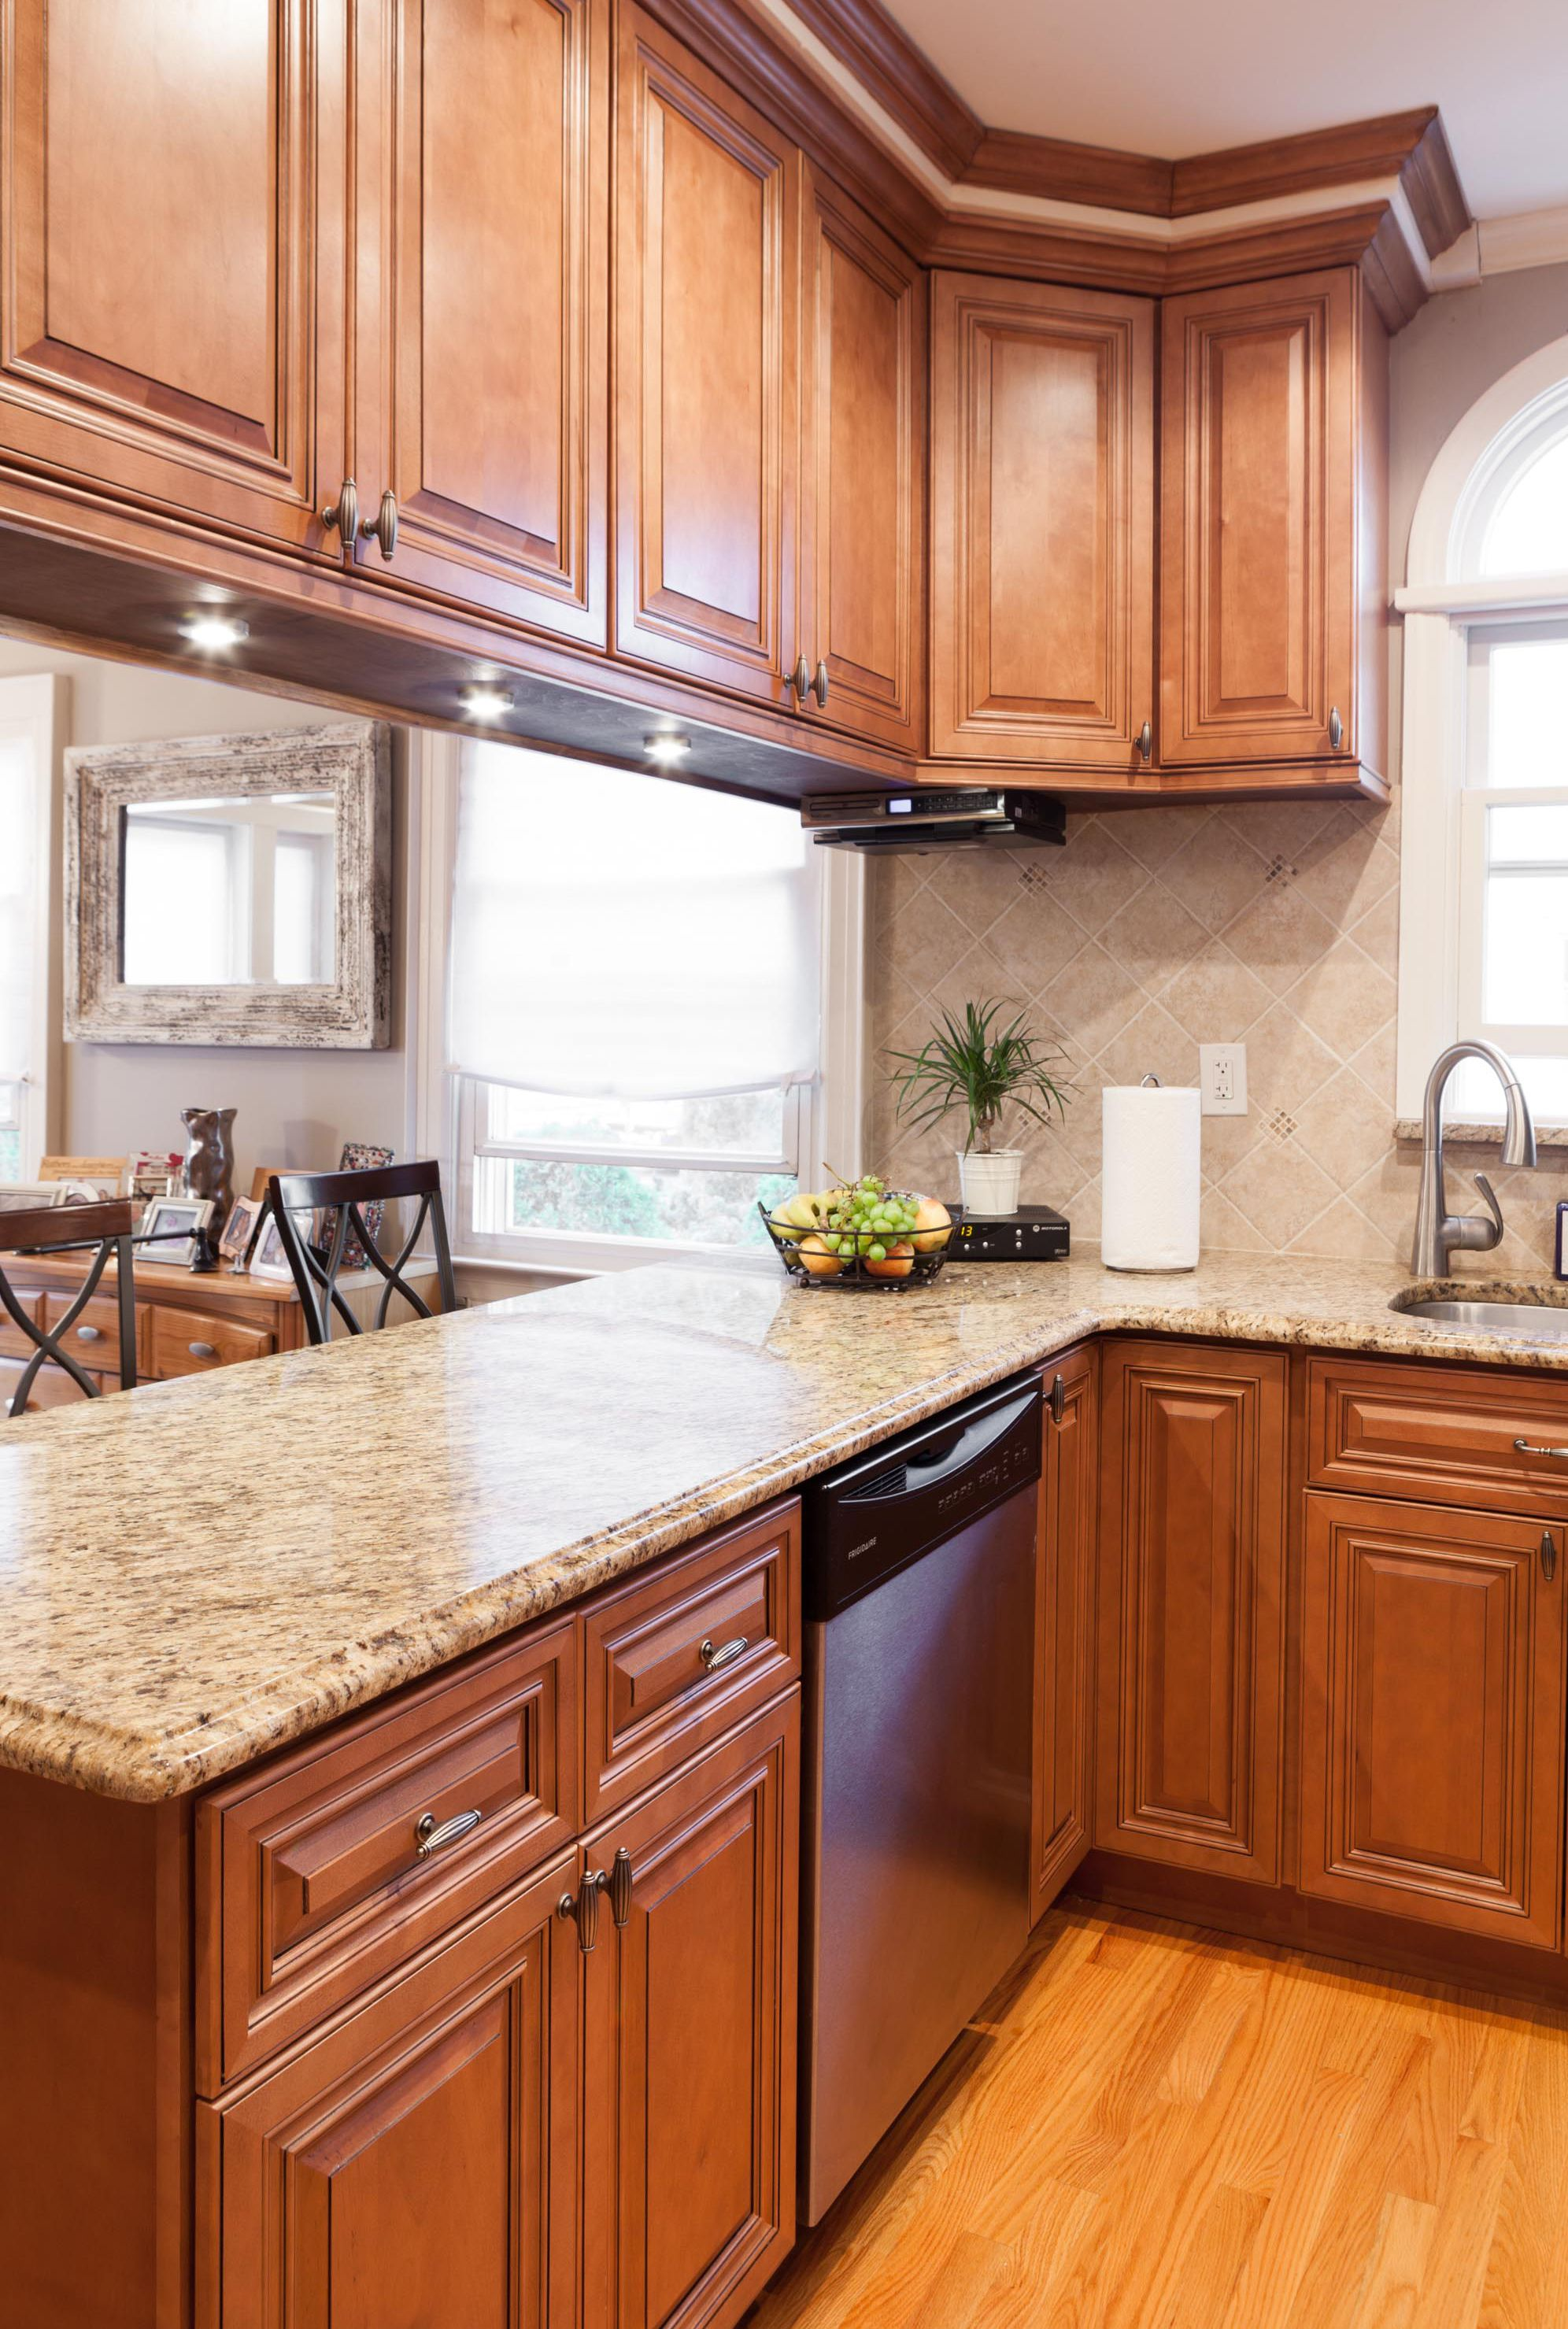 J&K Traditional maple wood cabinets in Cinnamon Glaze ... on Best Granite Color For Maple Cabinets  id=89077